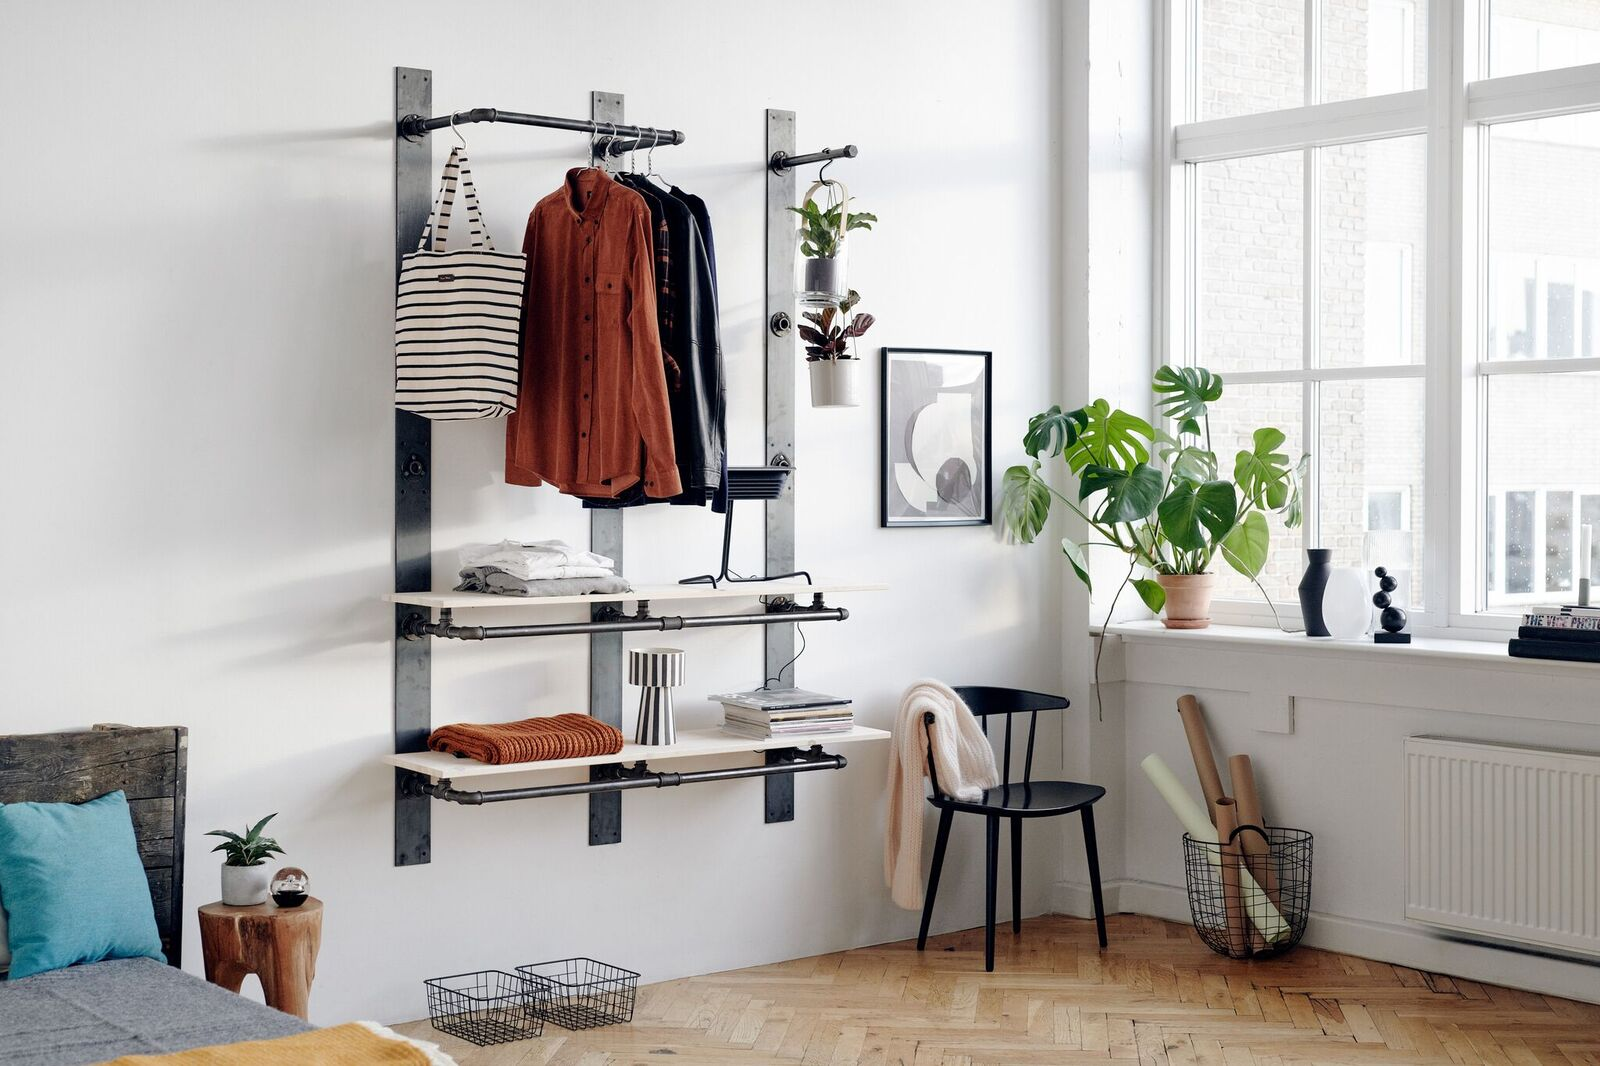 RackBuddy Elements - smart storage systems with rails and wooden shelves